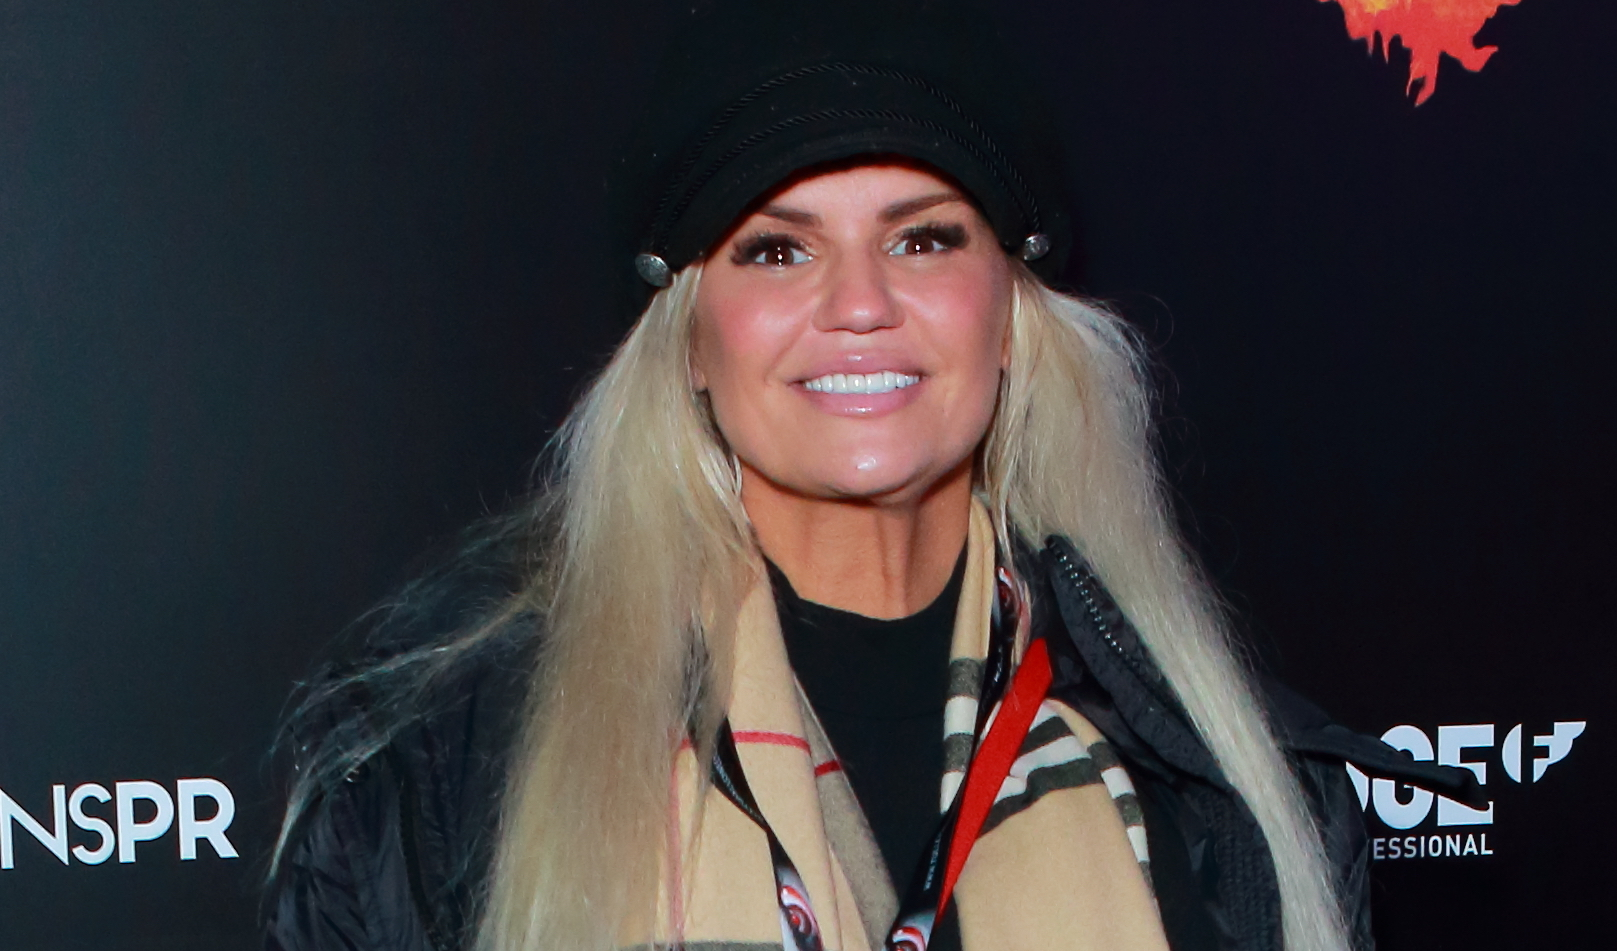 Kerry Katona 'so proud' as she reveals daughter Molly's huge achievement